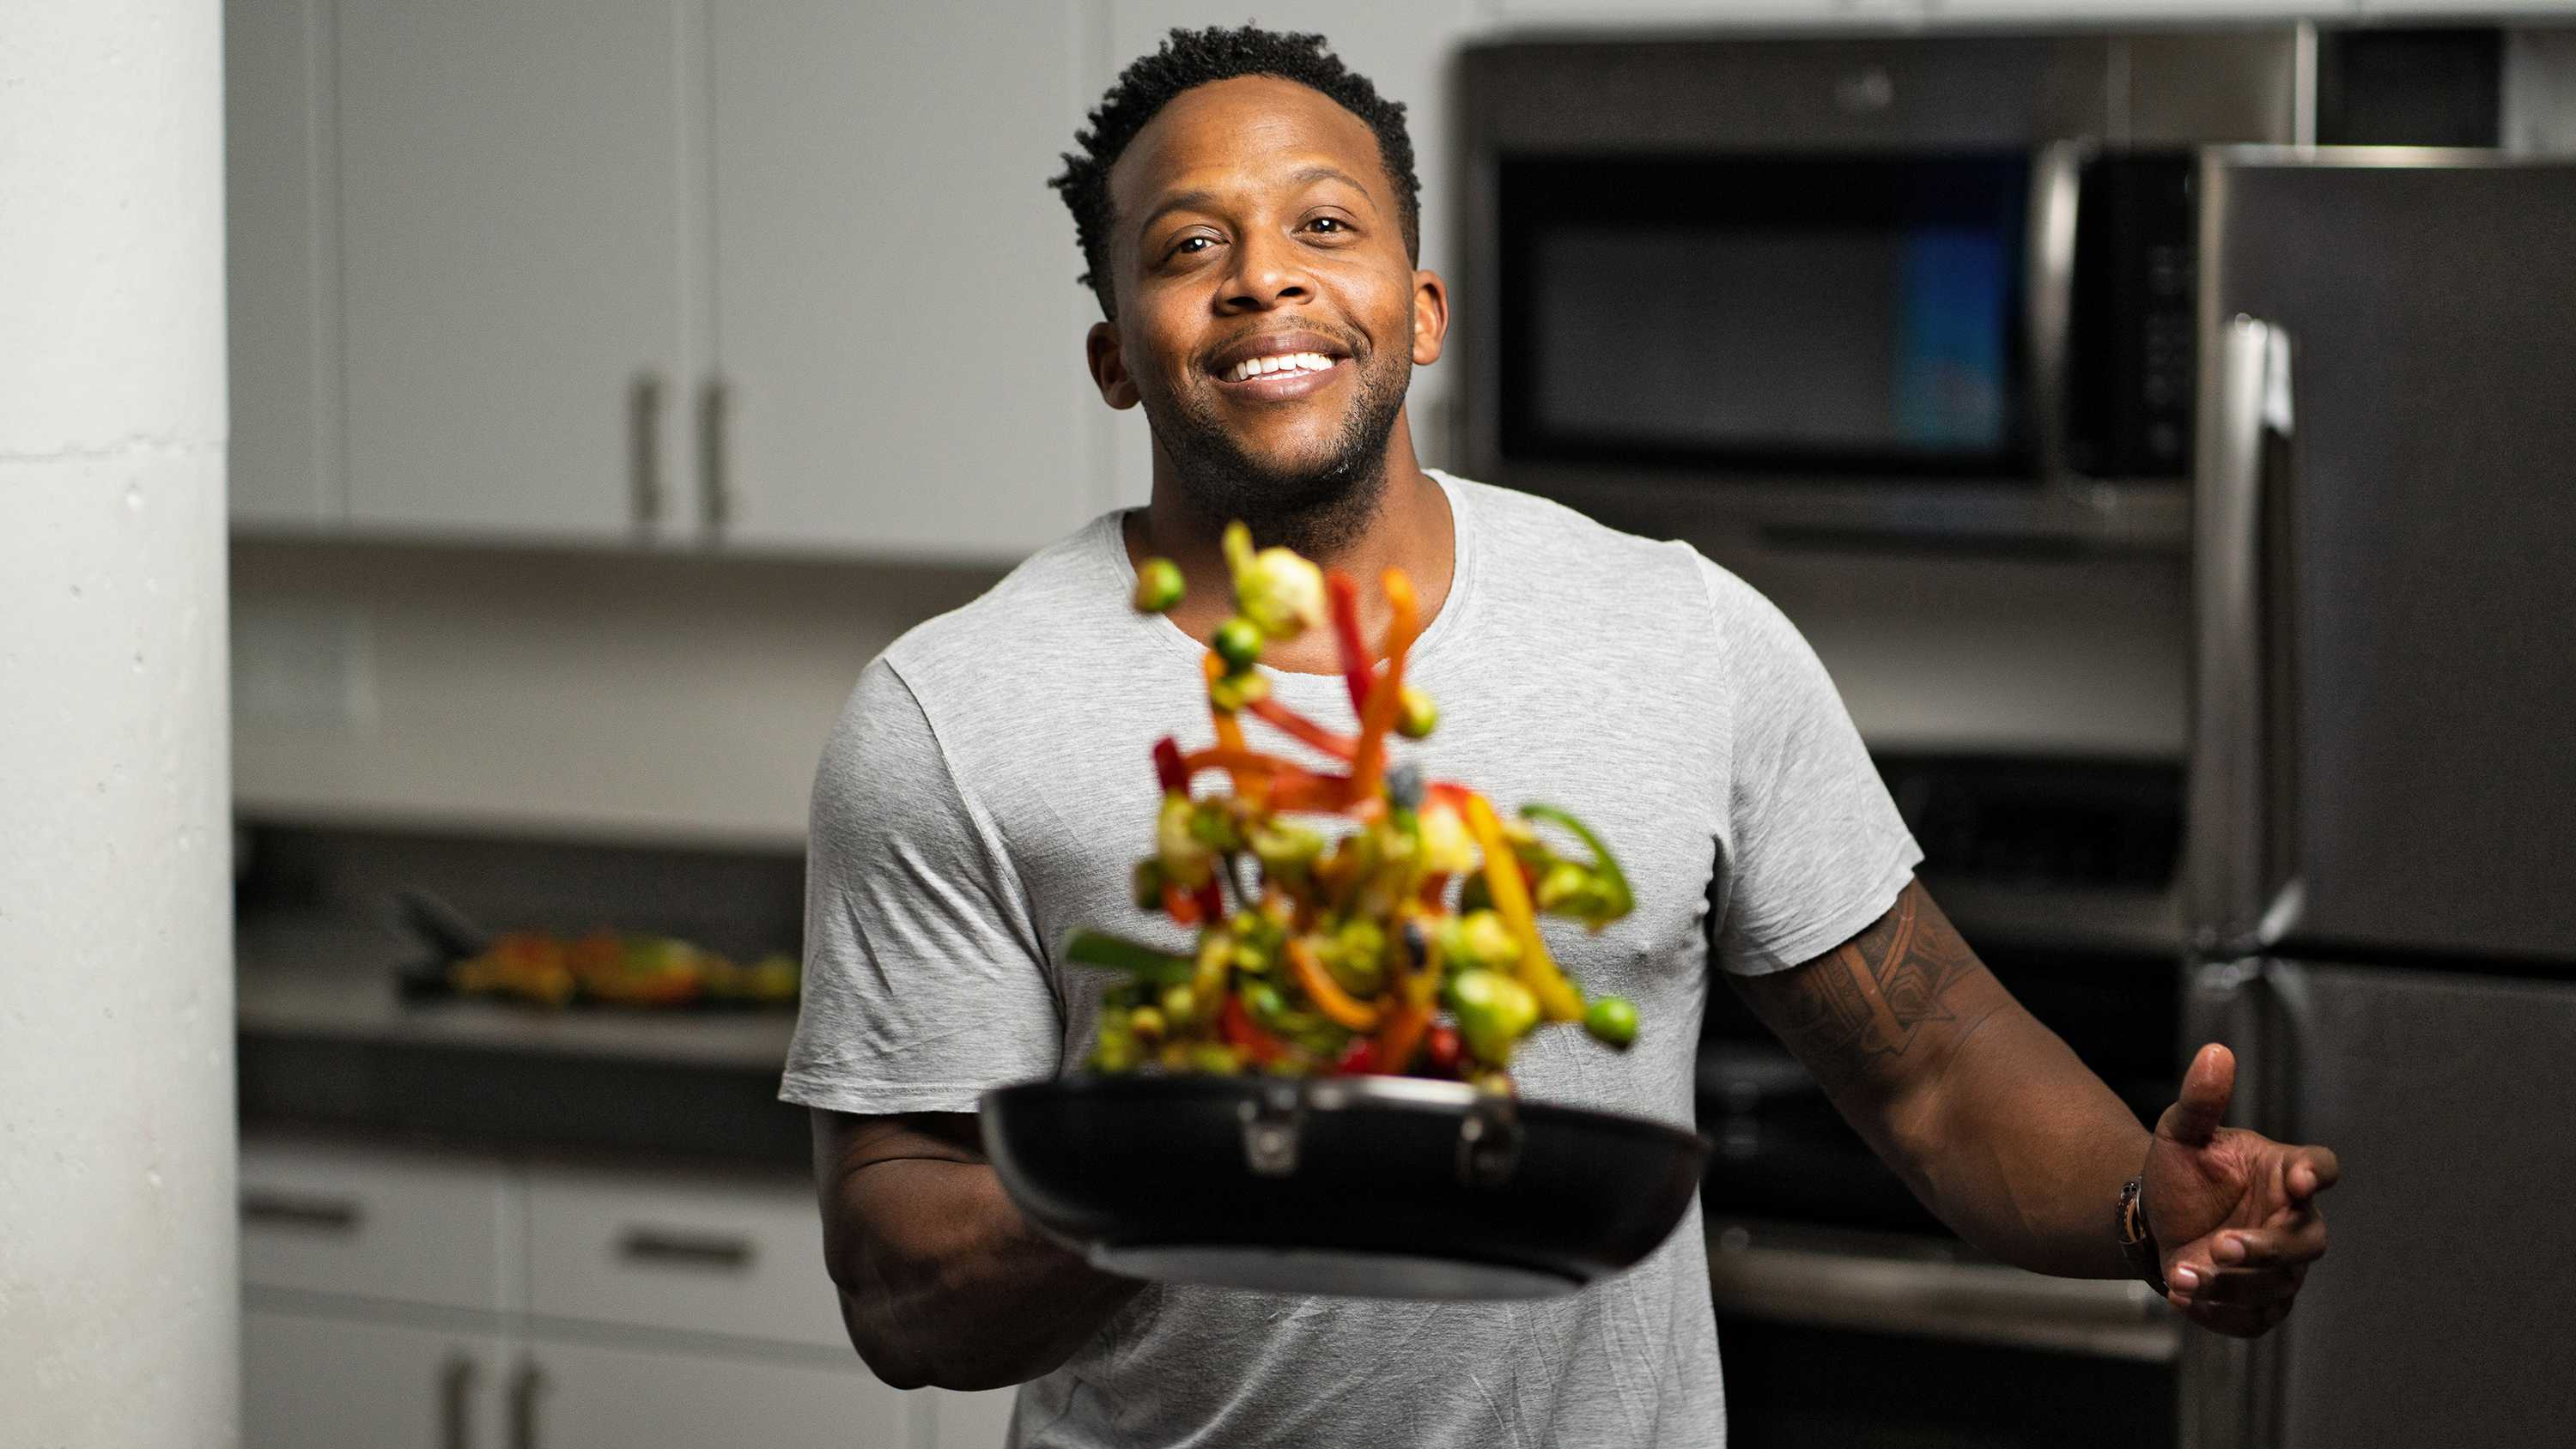 Chef and fitness expert Kevin Curry